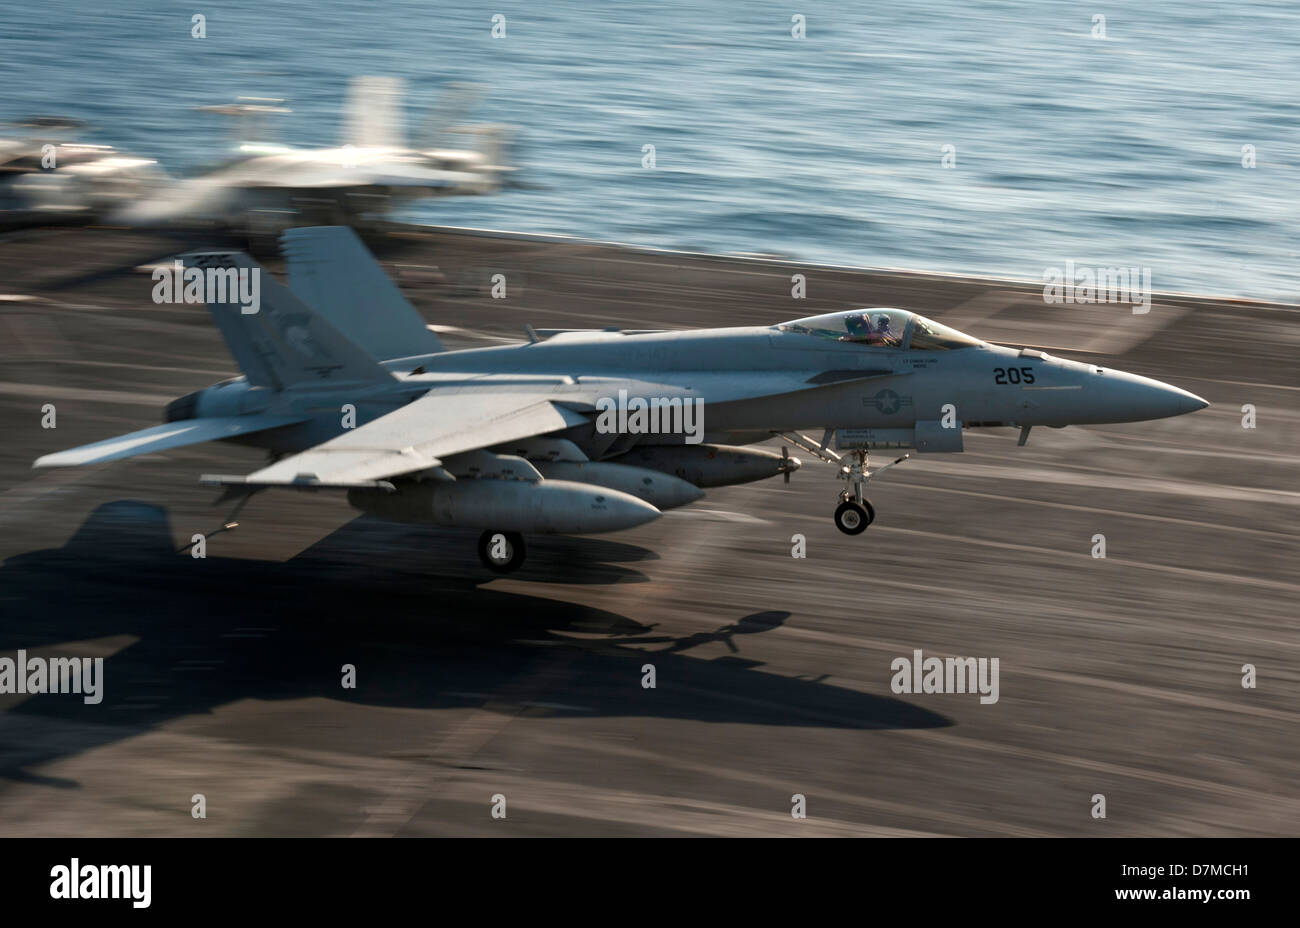 A US Navy F/A-18E Super Hornet lands on the flight deck of the aircraft carrier USS Nimitz May 8, 2013 underway Stock Photo